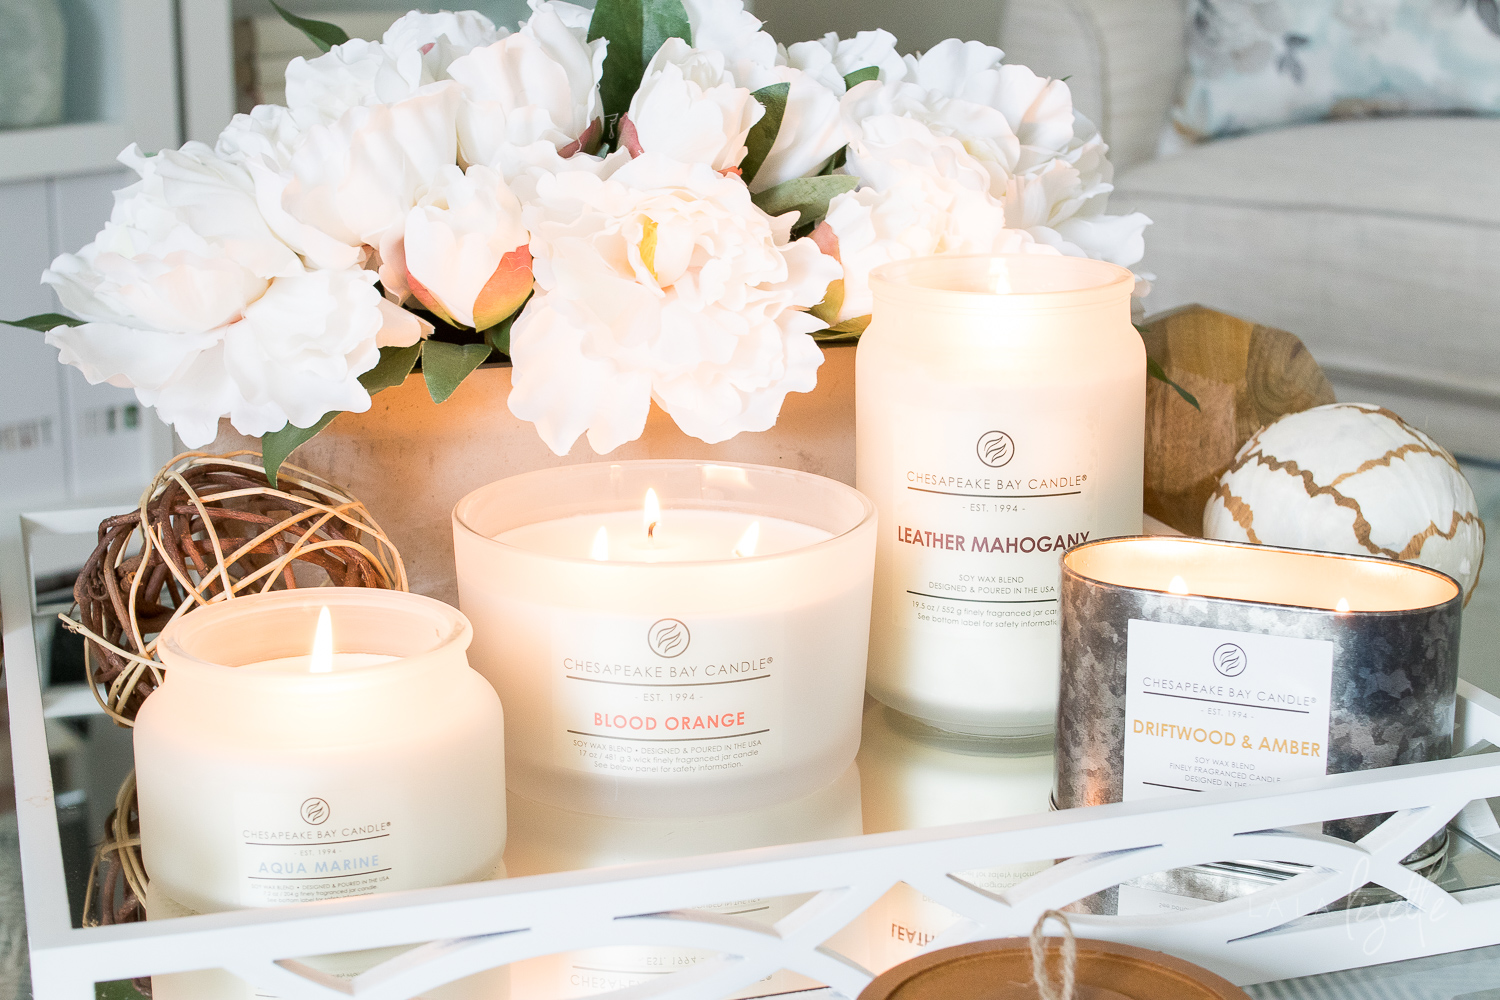 Chesapeake Bay Candle | The Heritage Collection has relaxing scents that transport you to the shores of the beloved Chesapeake Bay